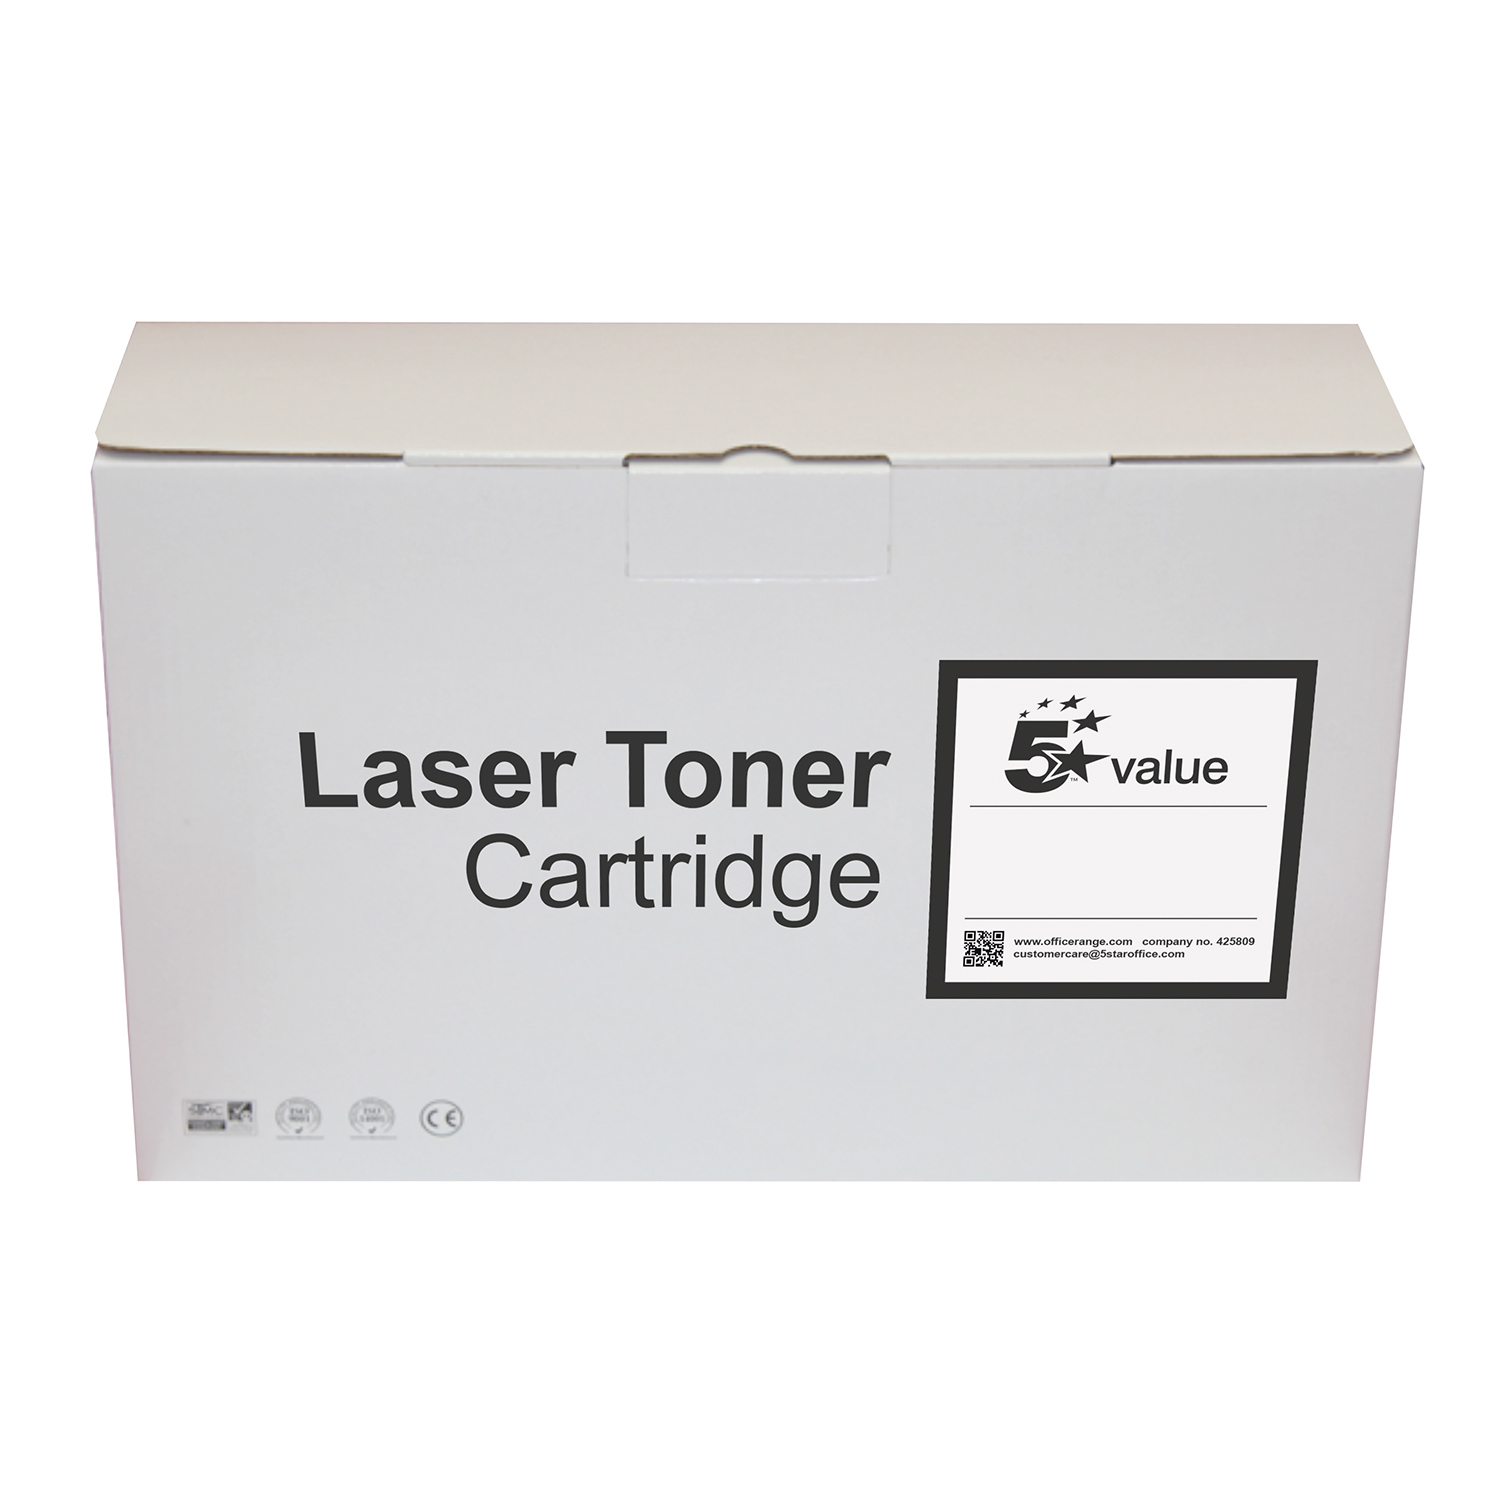 5 Star Value Remanufactured Laser Toner Cartridge 2600pp Magenta HP No. 305A CE413A Alternative